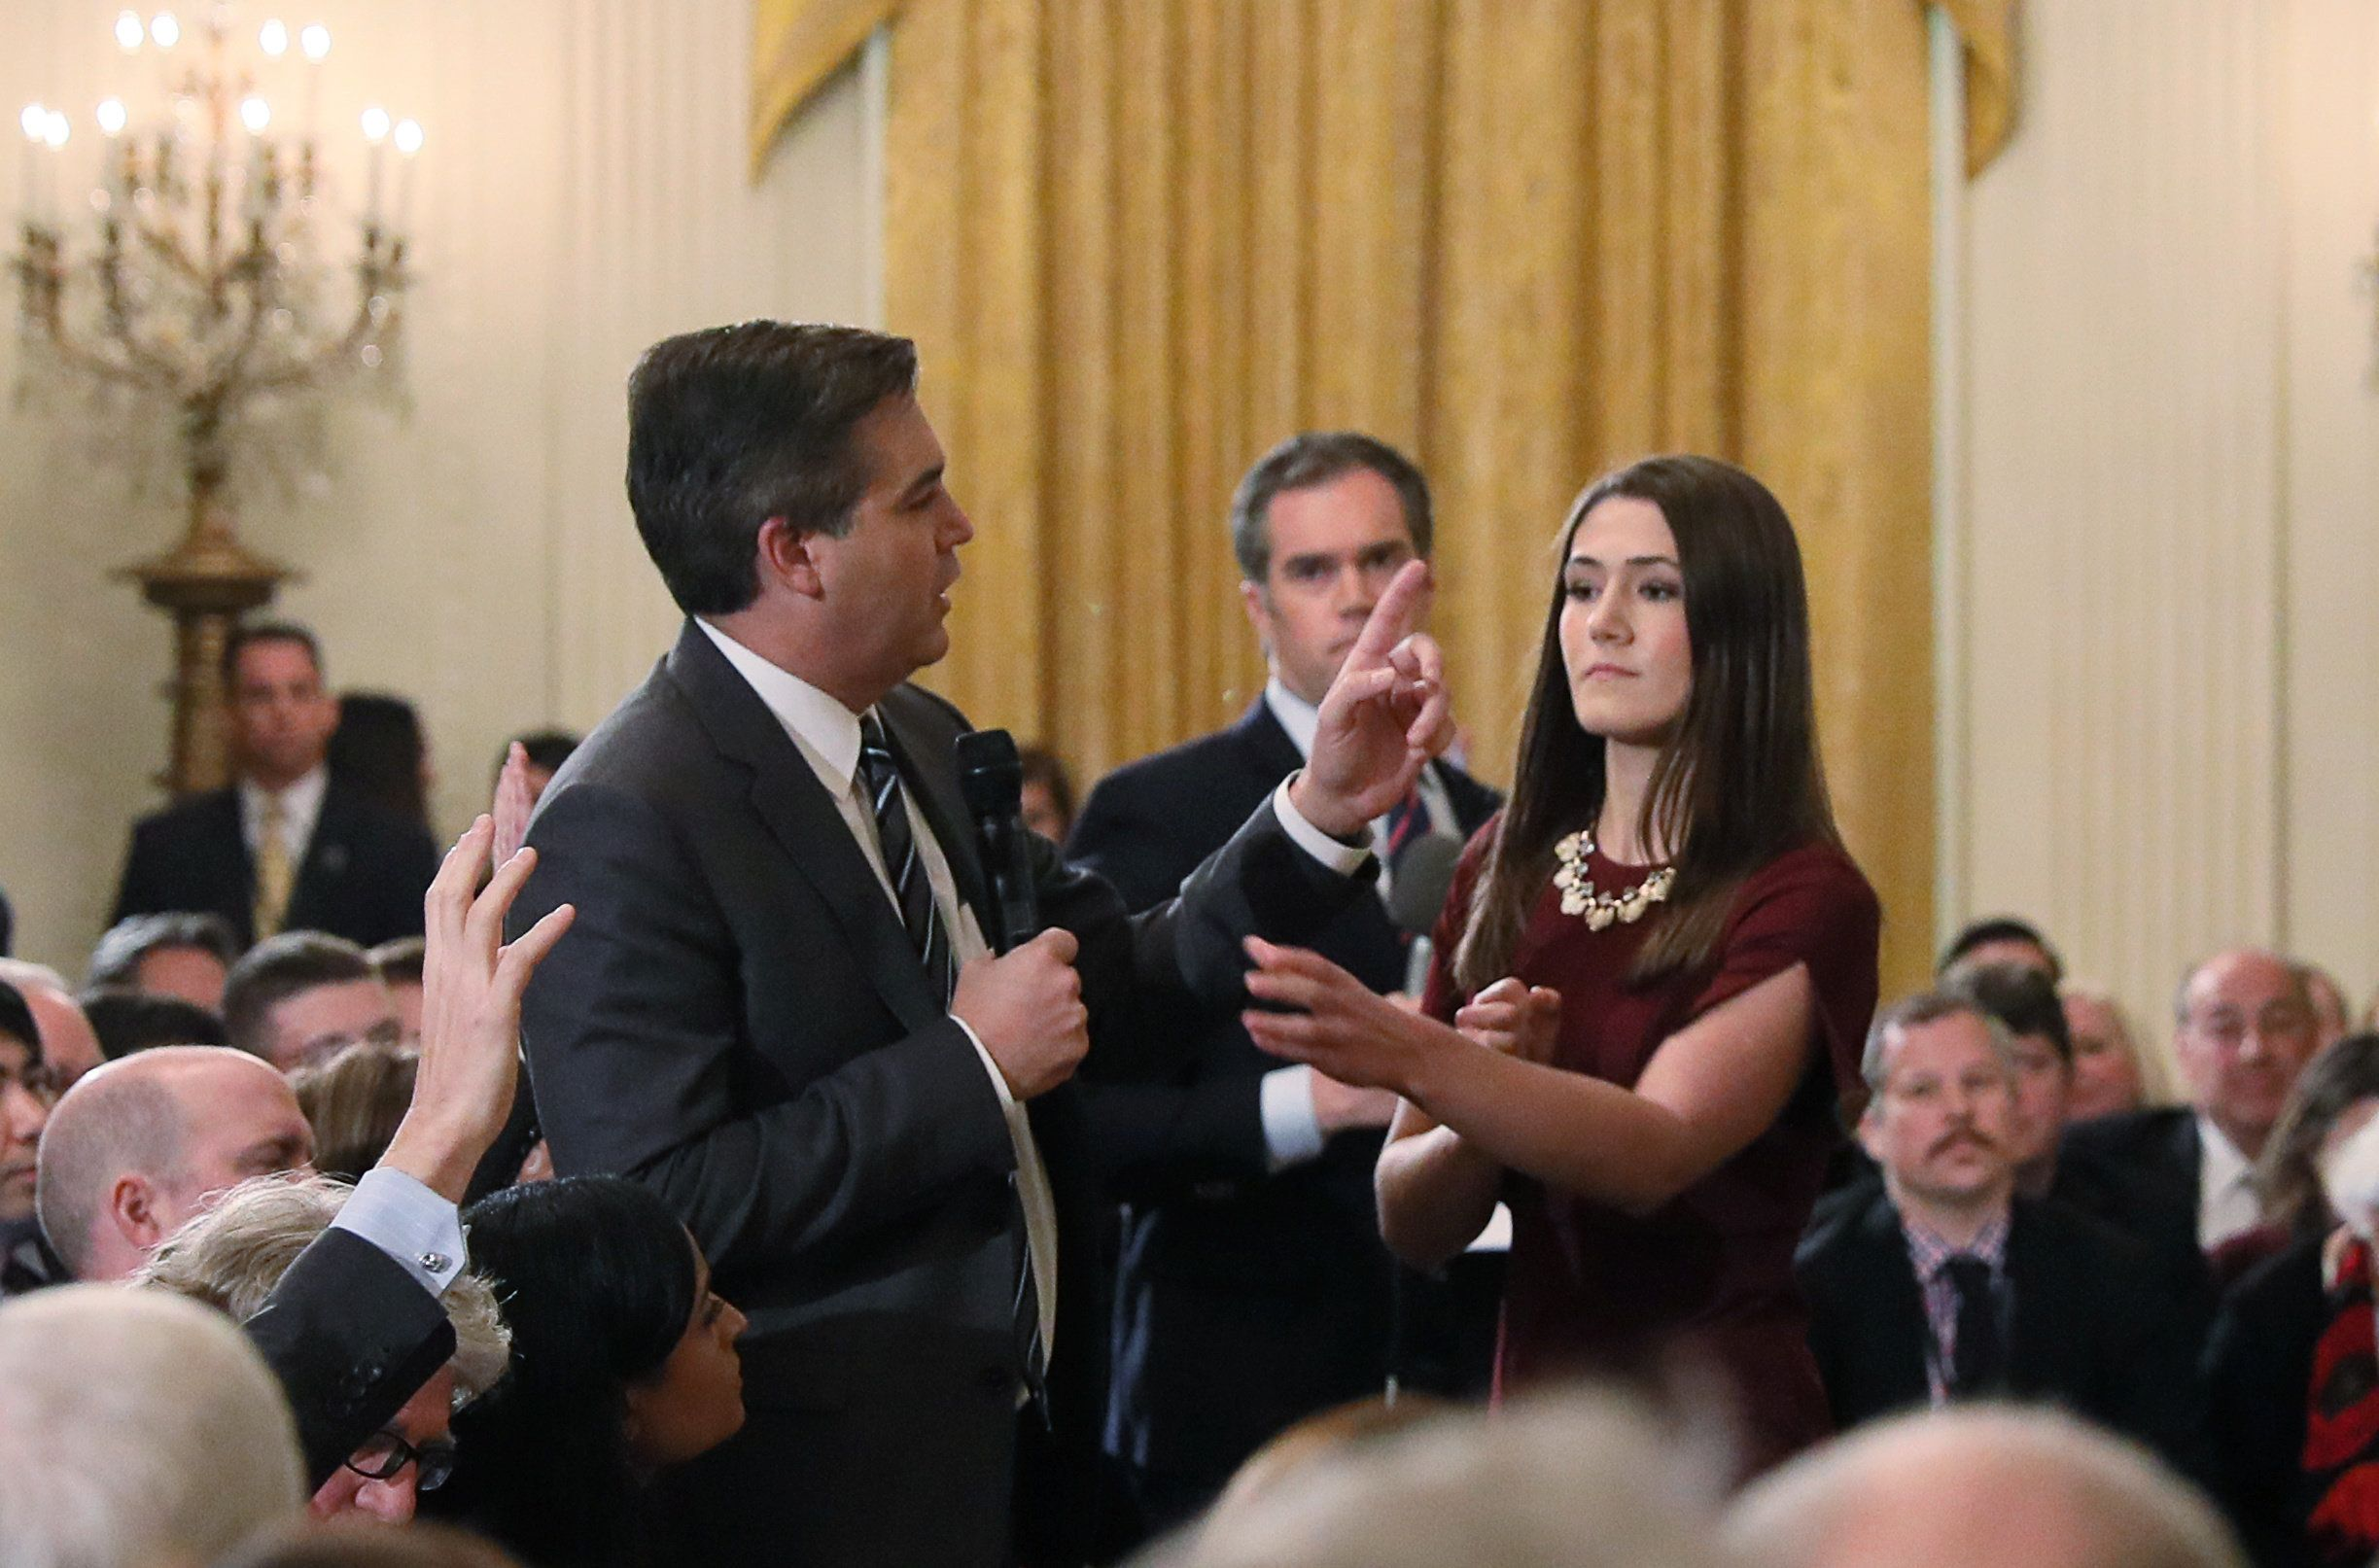 A White House intern reaches for and tries to take away the microphone held by CNN correspondent Jim Acosta as he questions U.S. President Donald Trump during a news conference at the White House in Washington, U.S., November 7, 2018. Picture taken November 7, 2018. REUTERS/Jonathan Ernst  (Picture 7 in a sequence of 15)